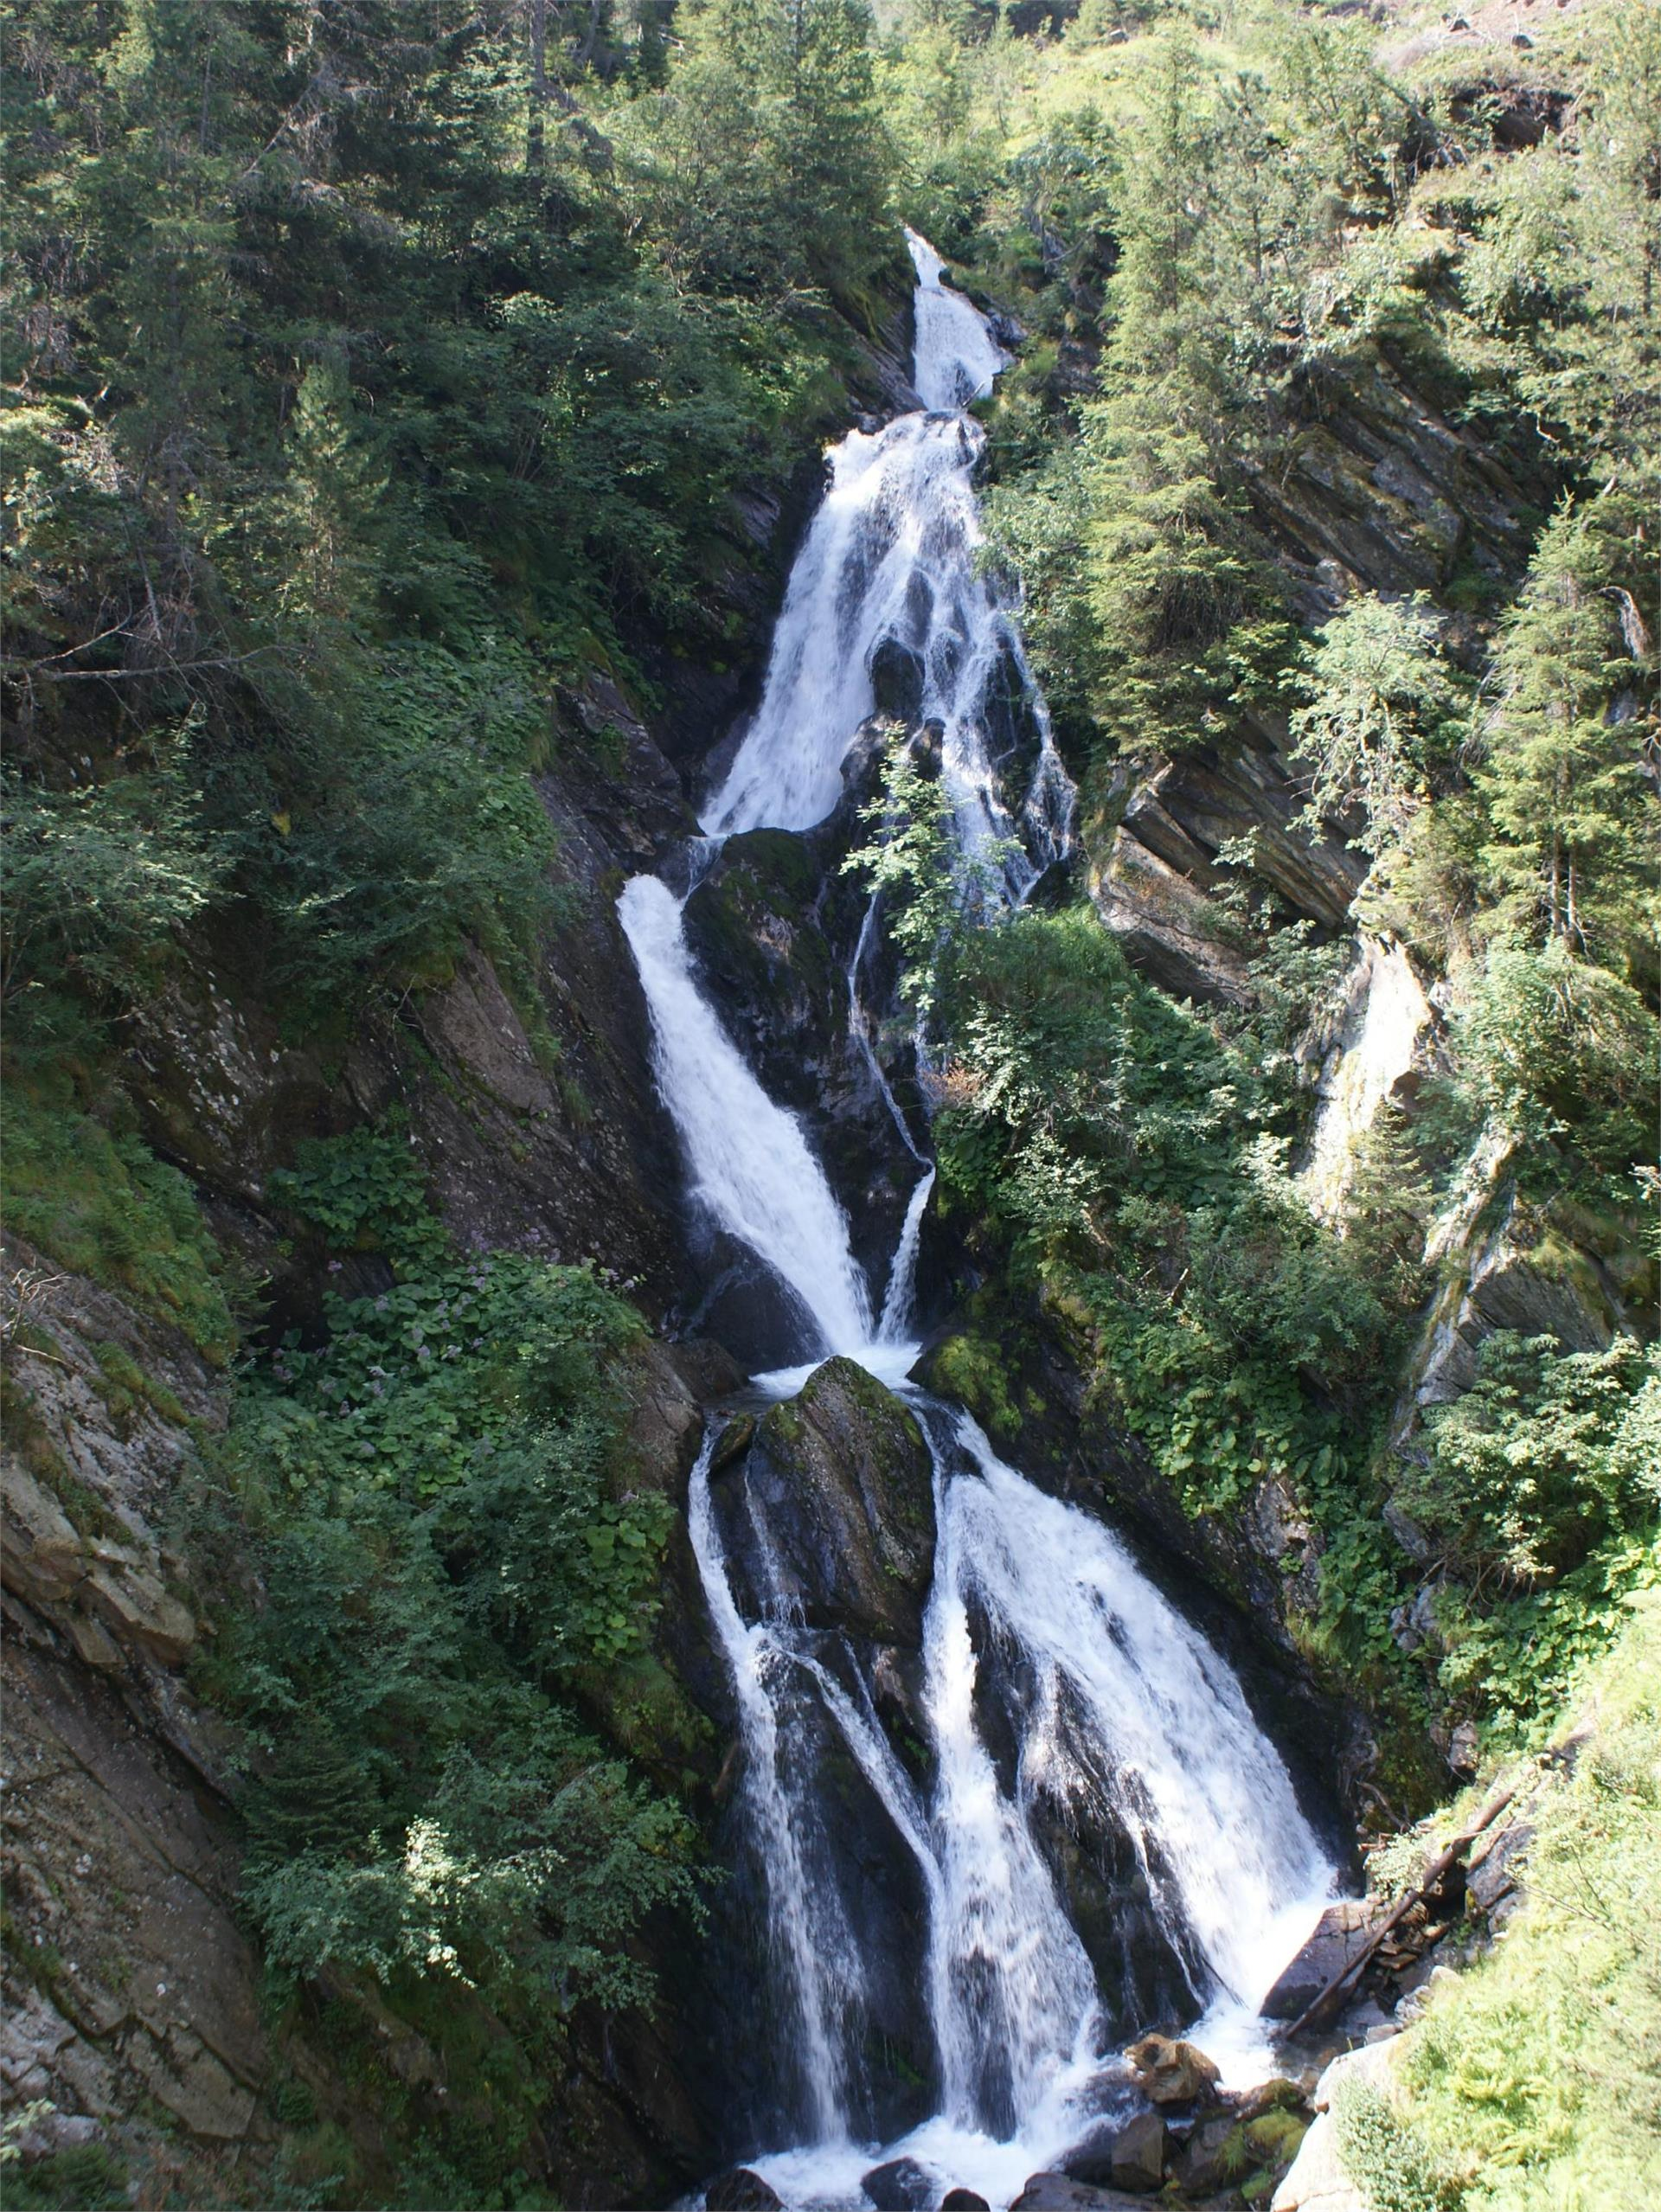 The Gurgl cascade